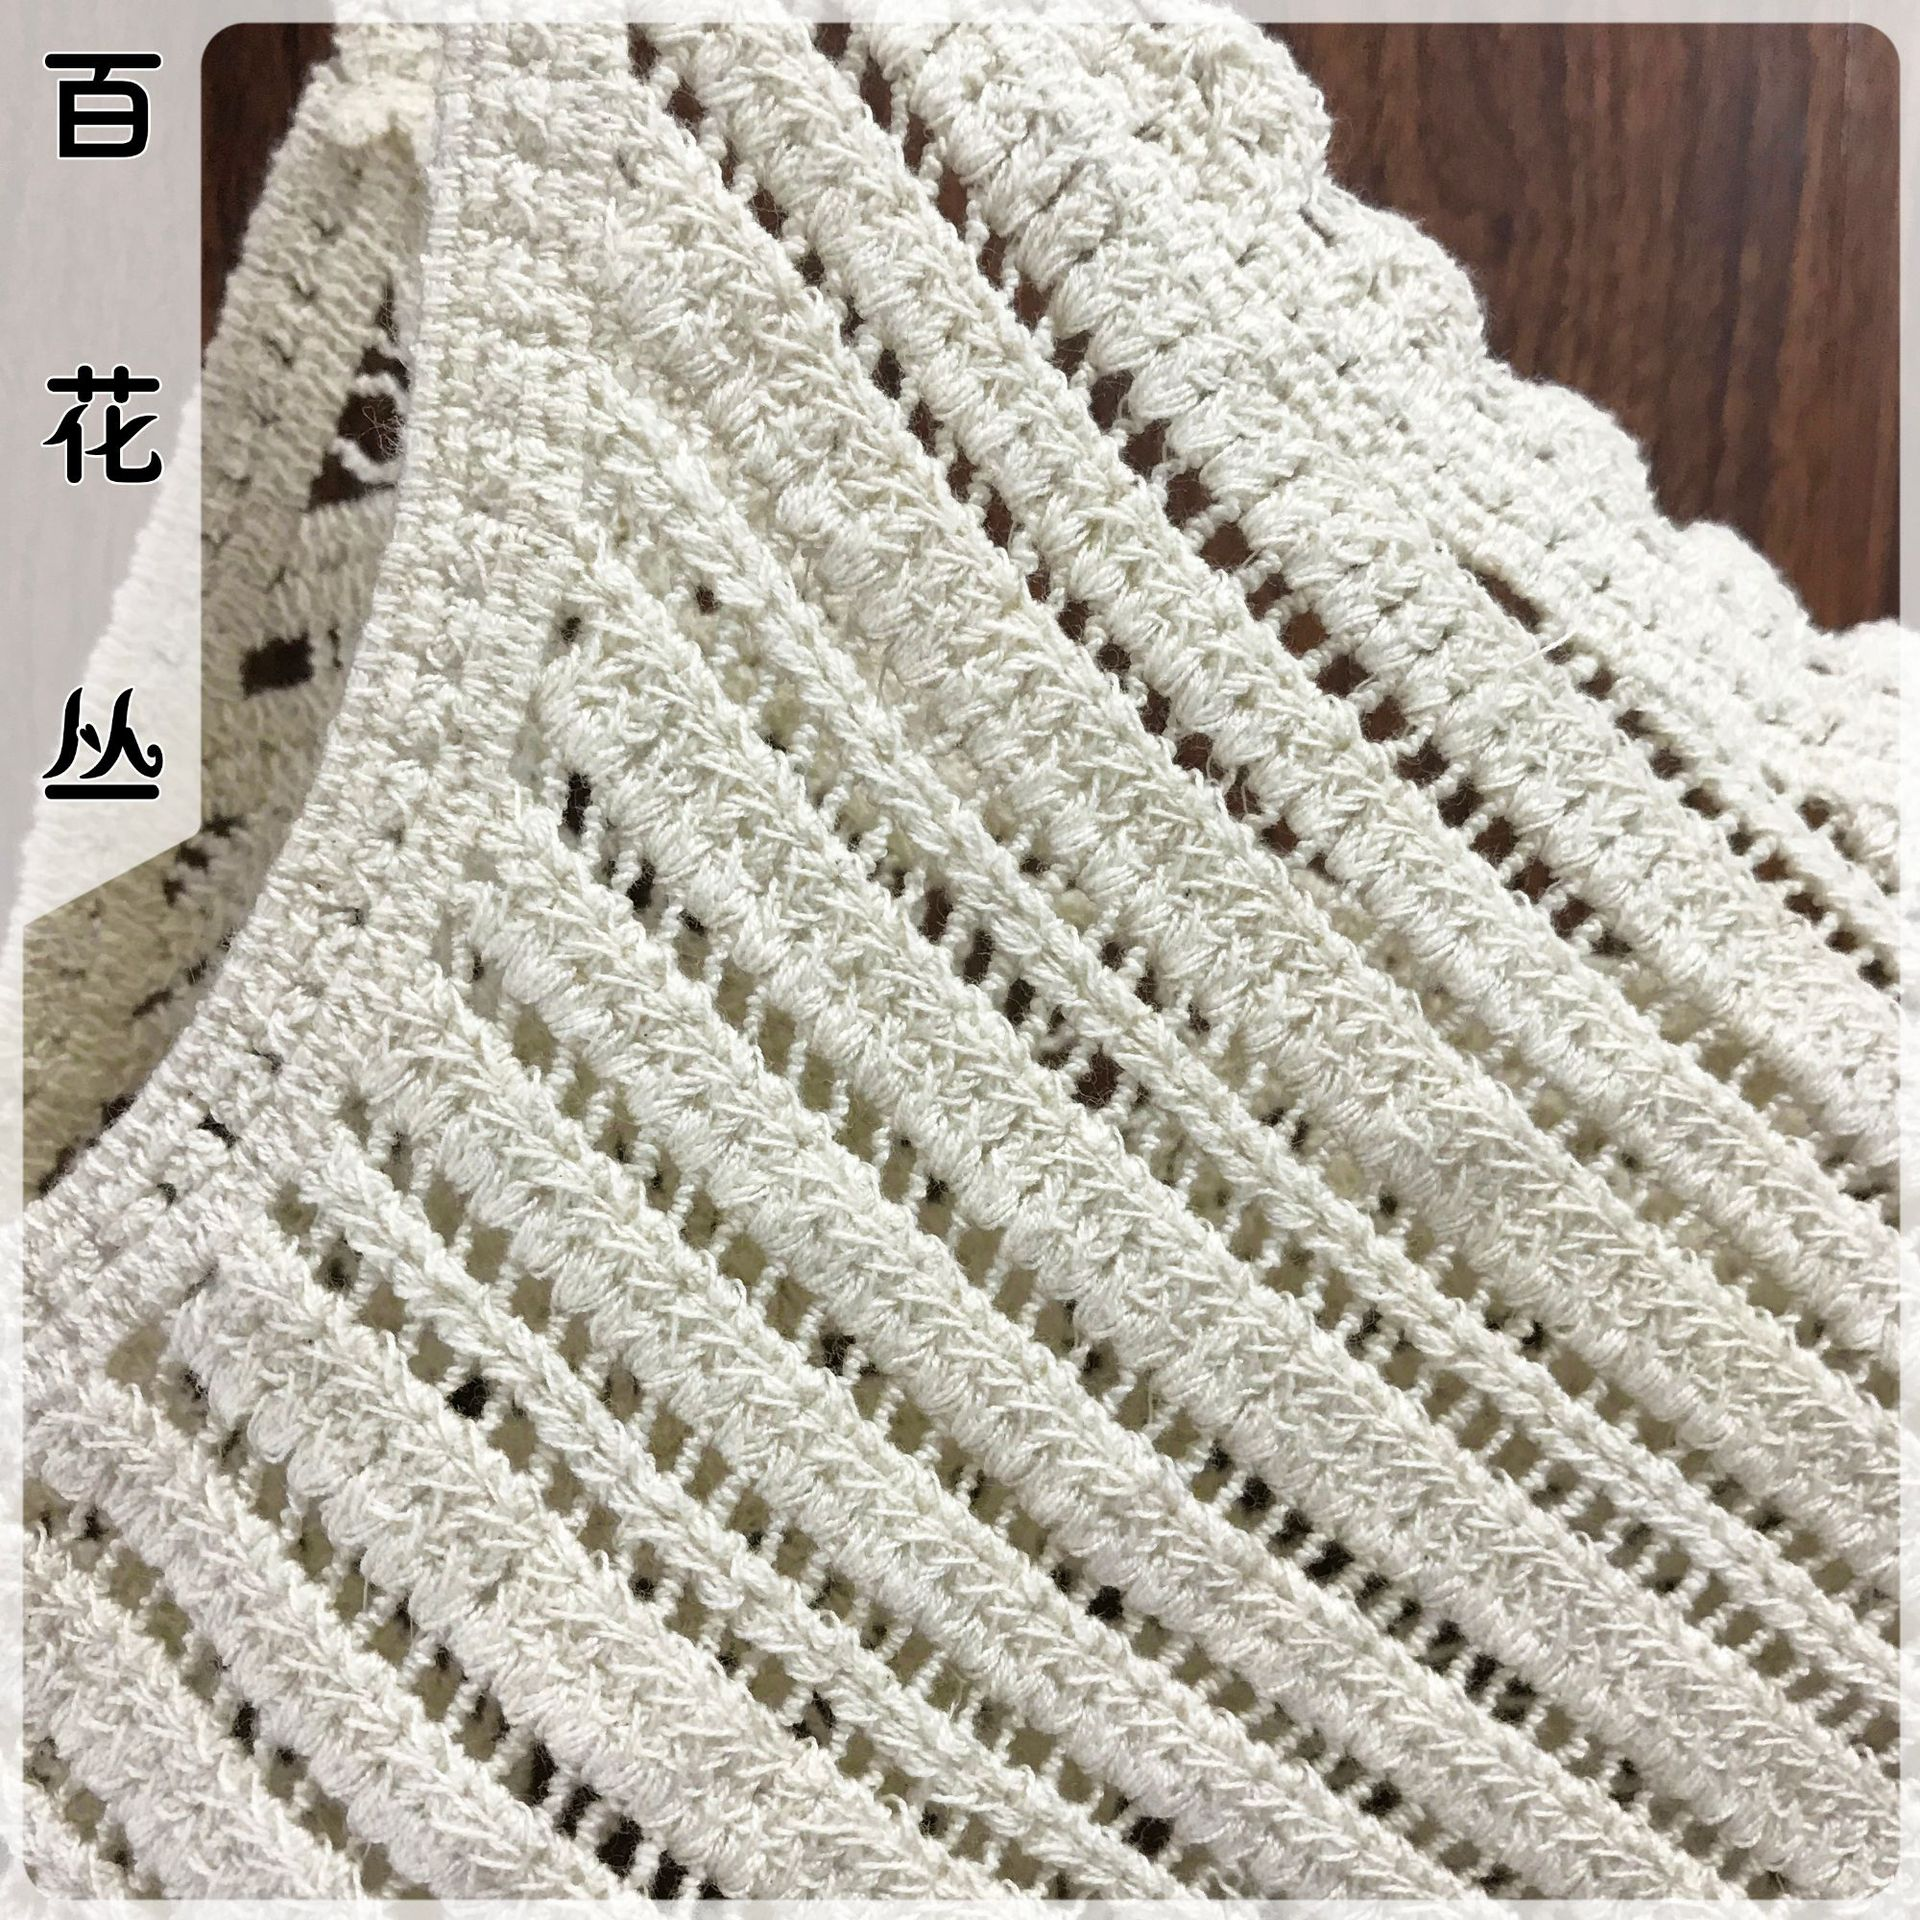 Flowers Plexus Spring And Summer New Style Cotton Thread Hollow Out Crochet Crochet Embroidery Flower Versatile Short Small Cami